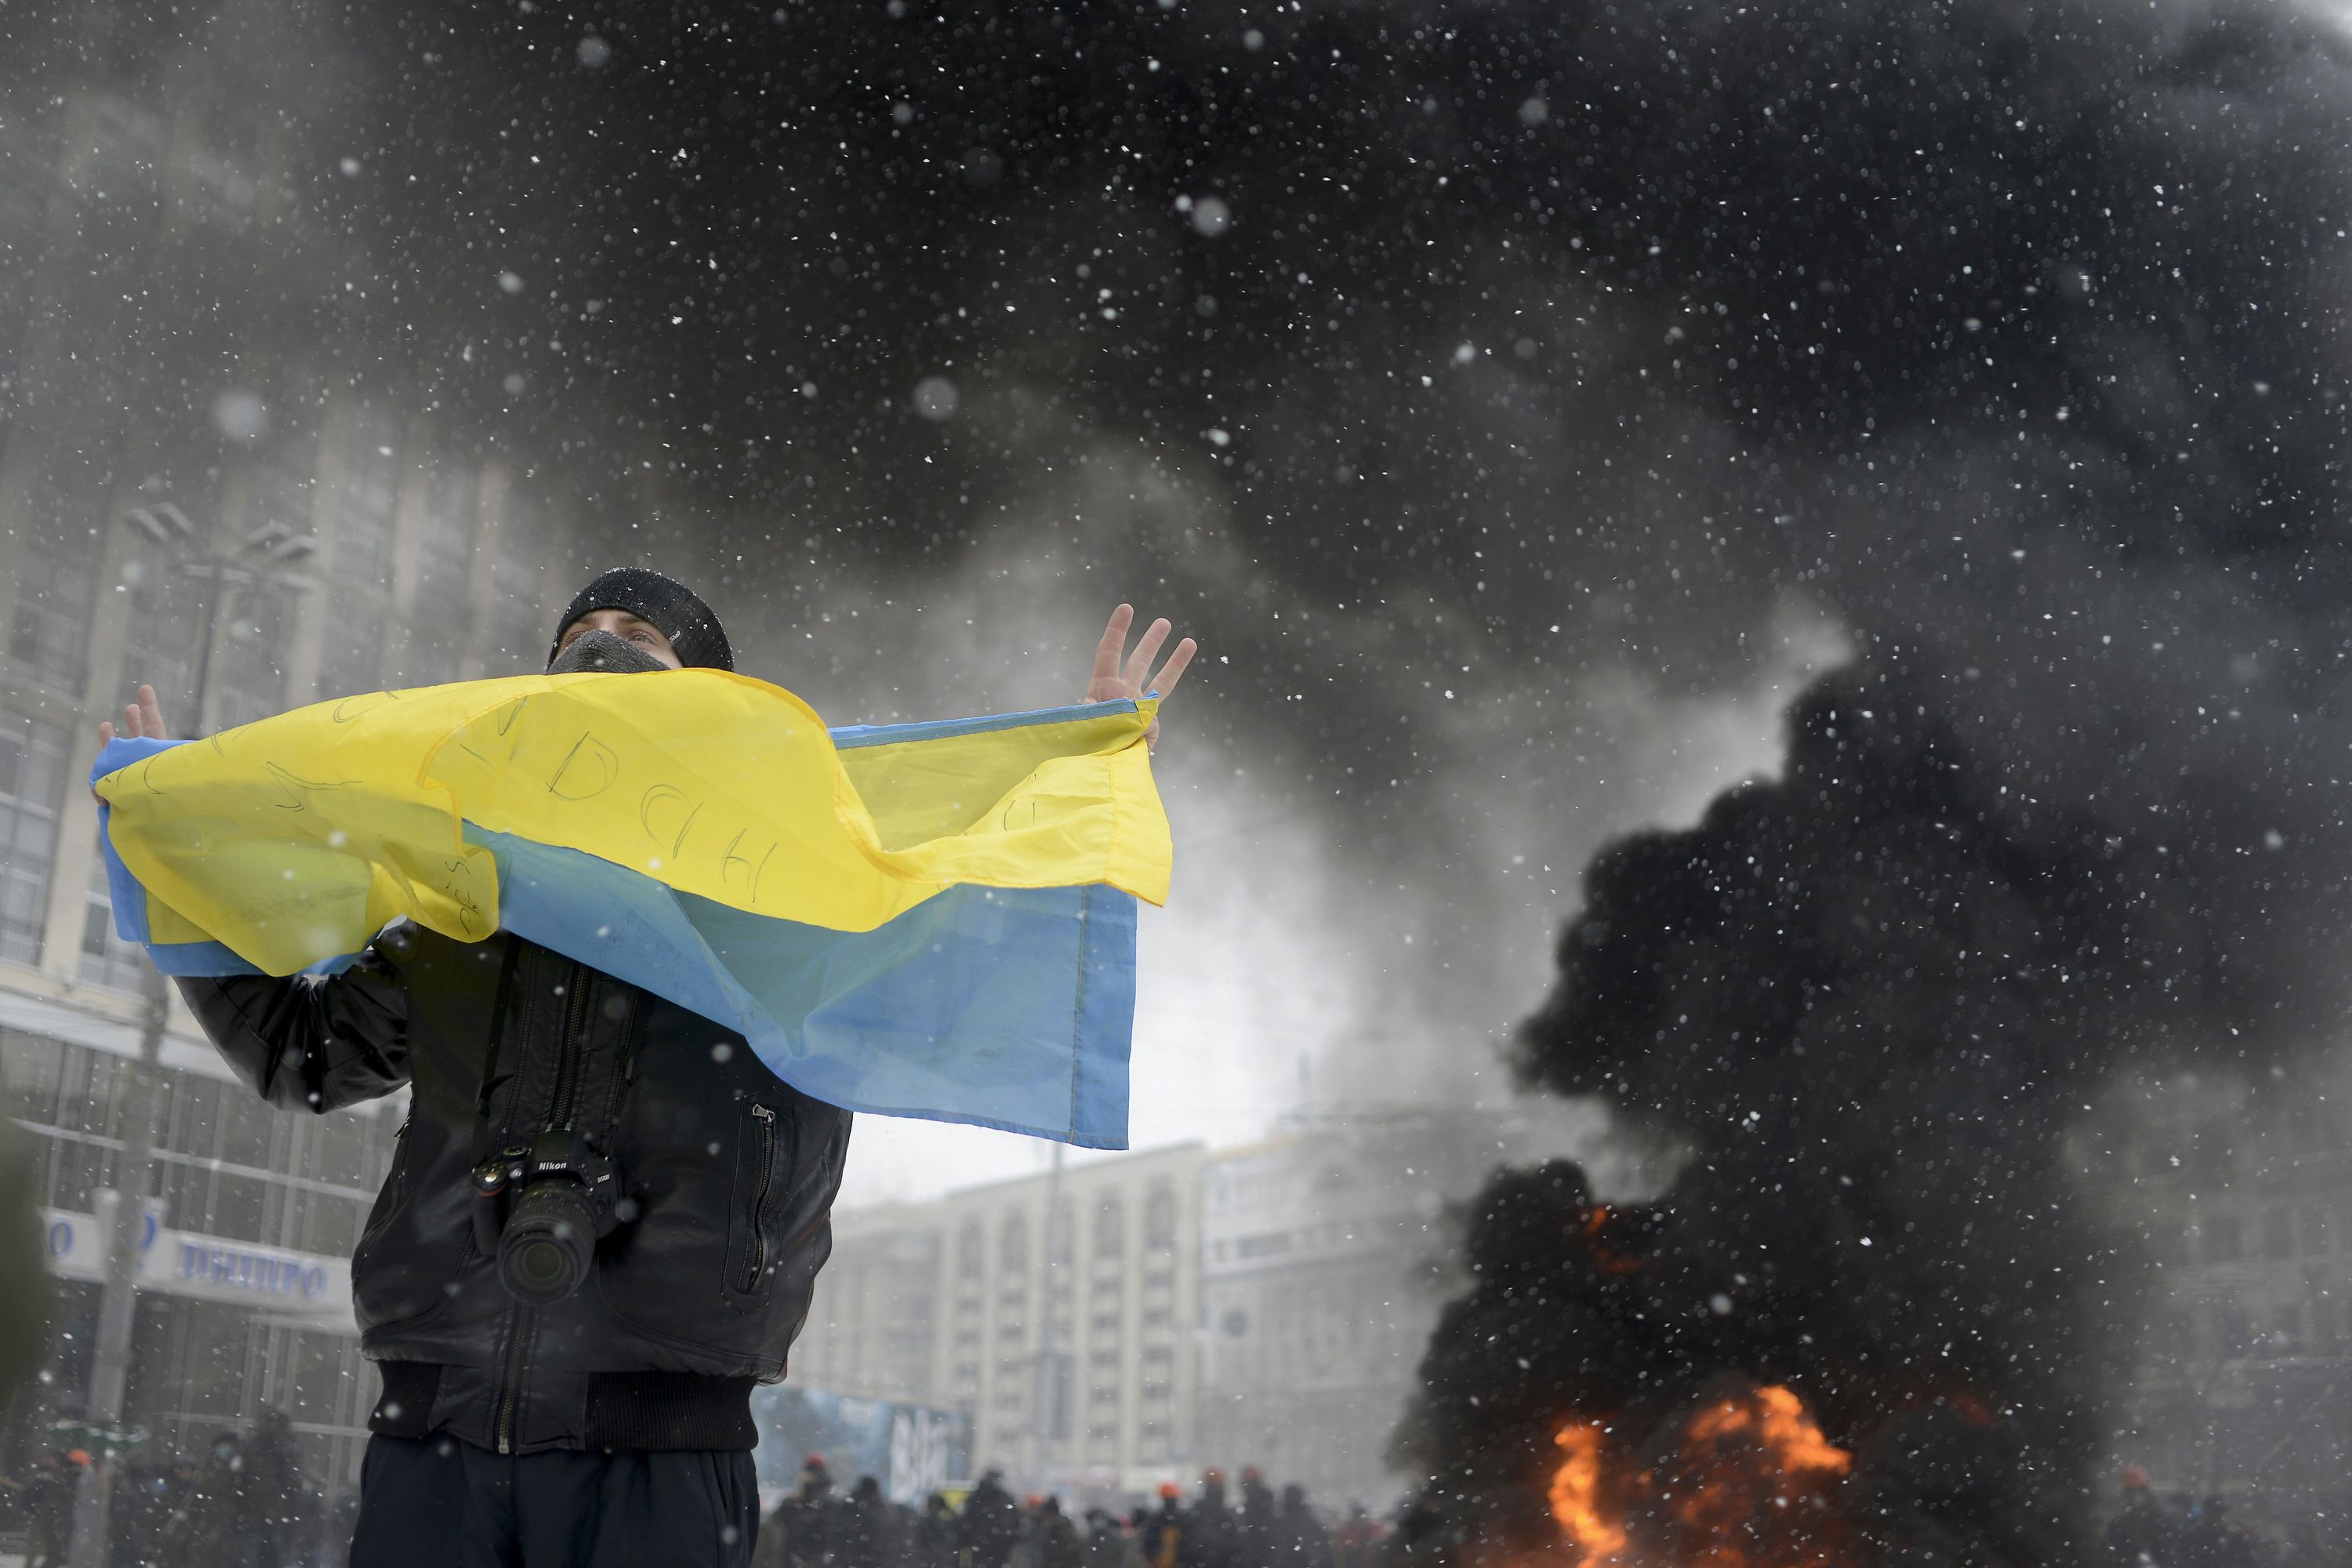 A Perspective on the Current Situation in Ukraine